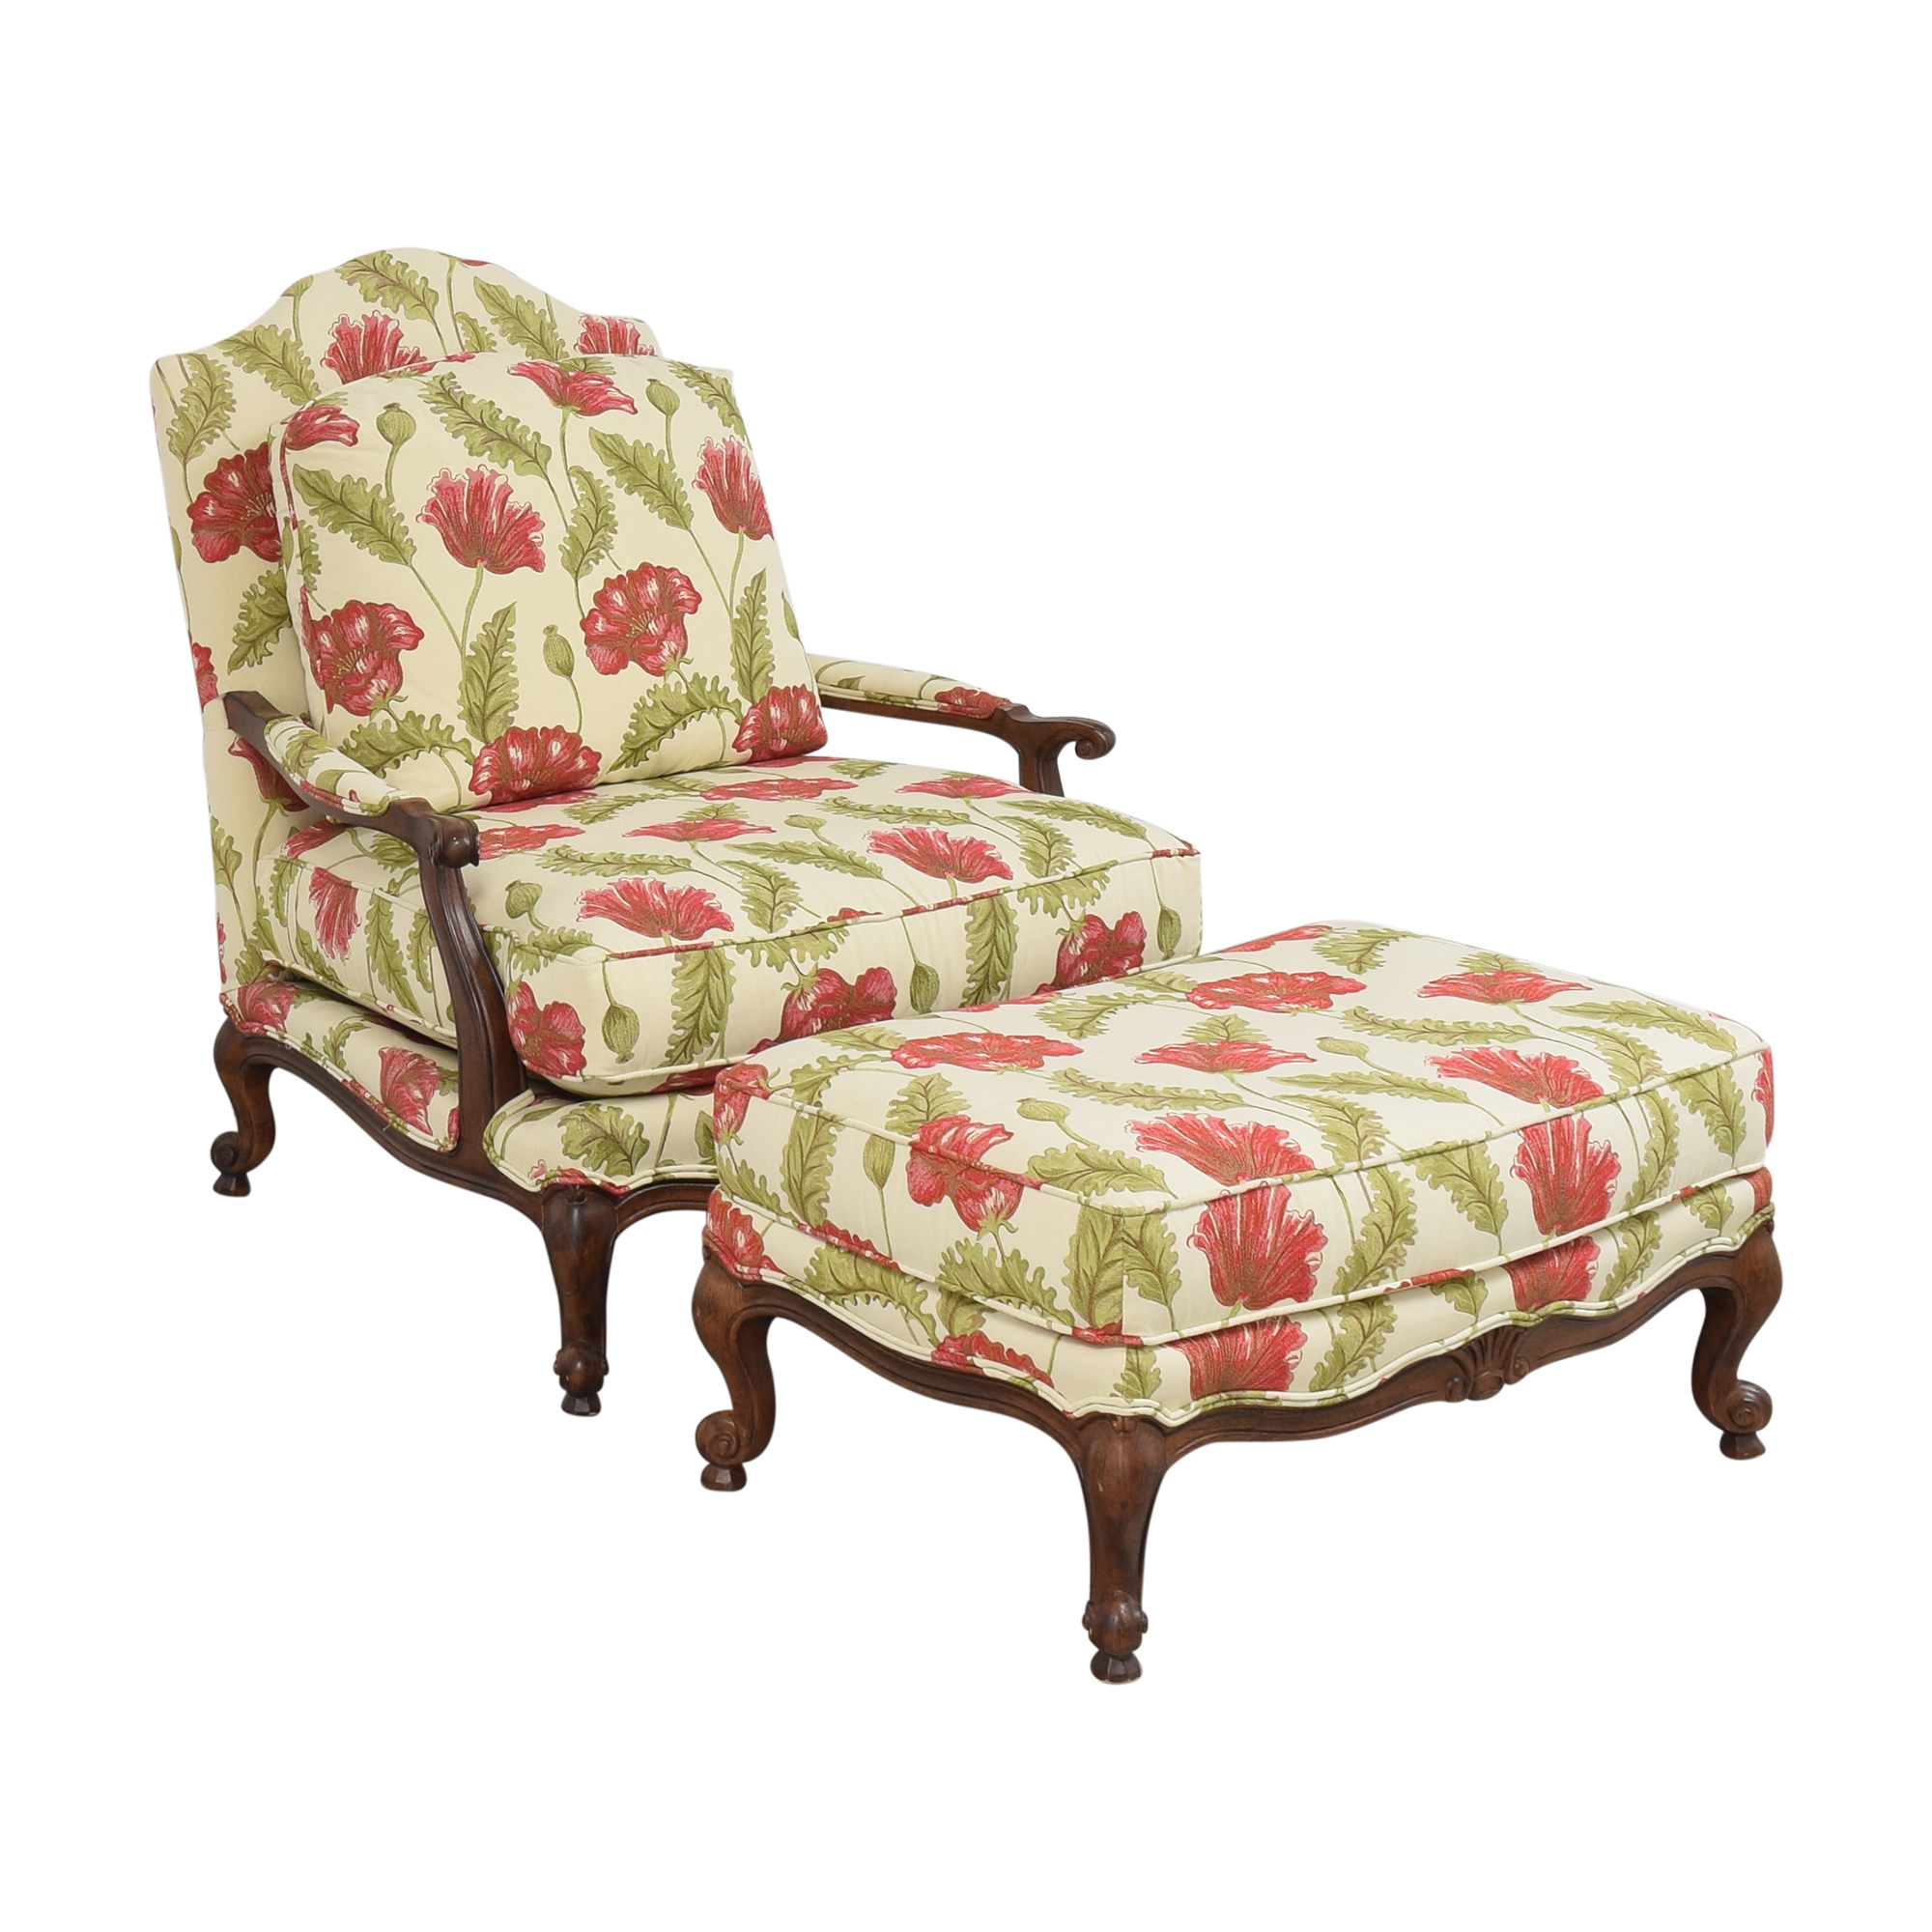 Clayton Marcus Clayton Marcus Floral Chair with Ottoman Accent Chairs